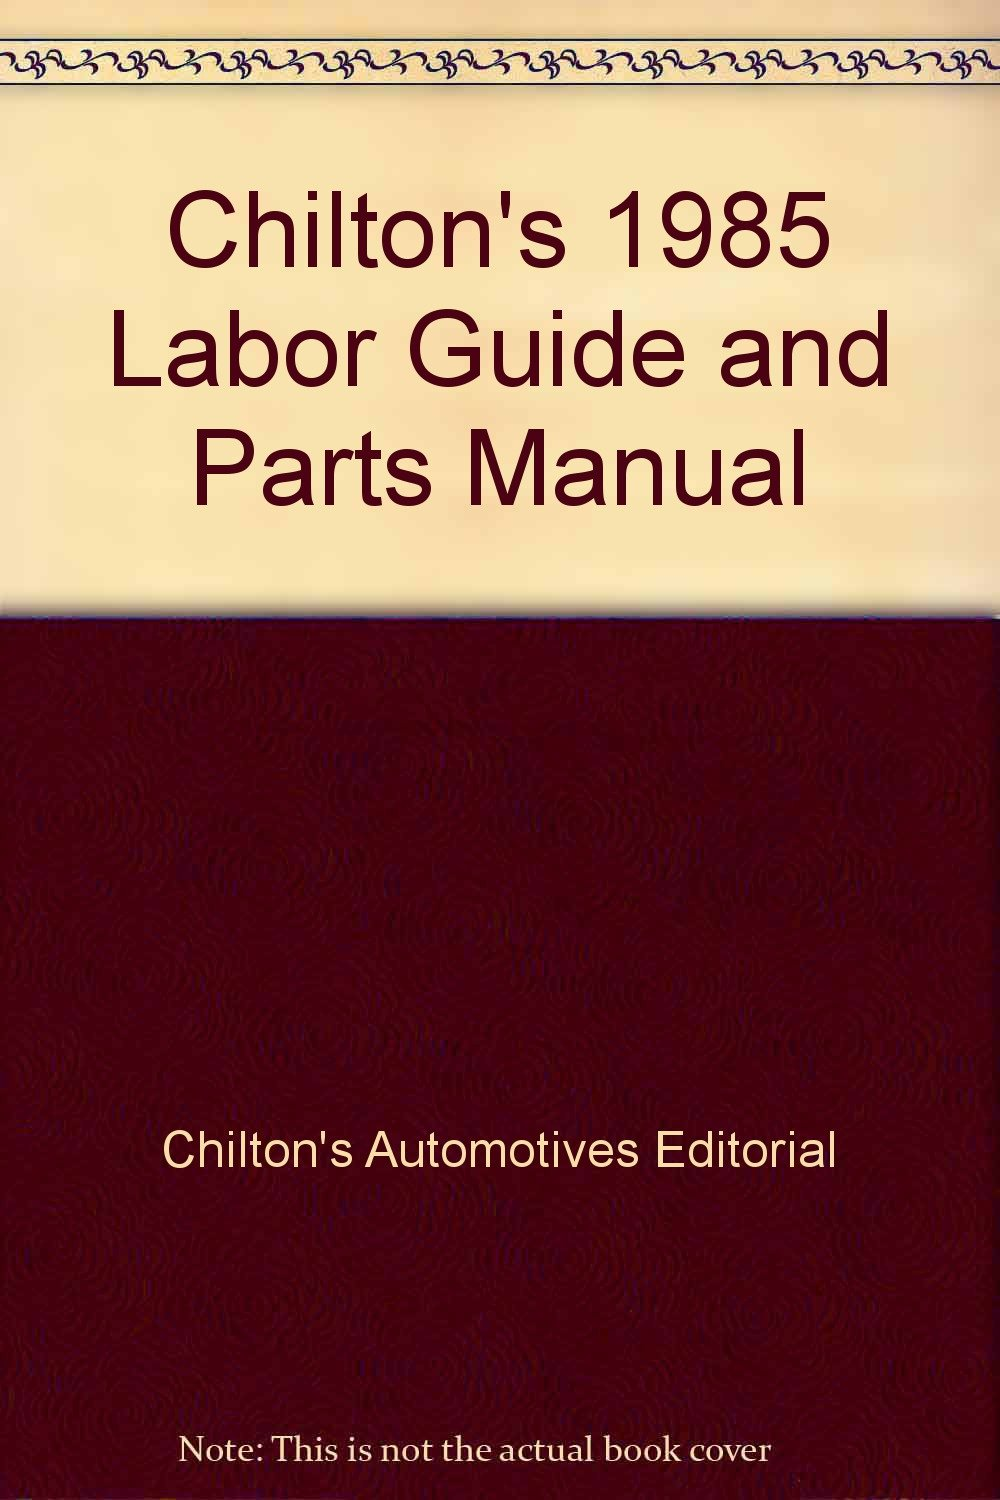 Amazon.com: Chilton's 1984 Labor Guide and Parts Manual Cars and Light  Trucks: John H., Managing Editor Weise: Health & Personal Care